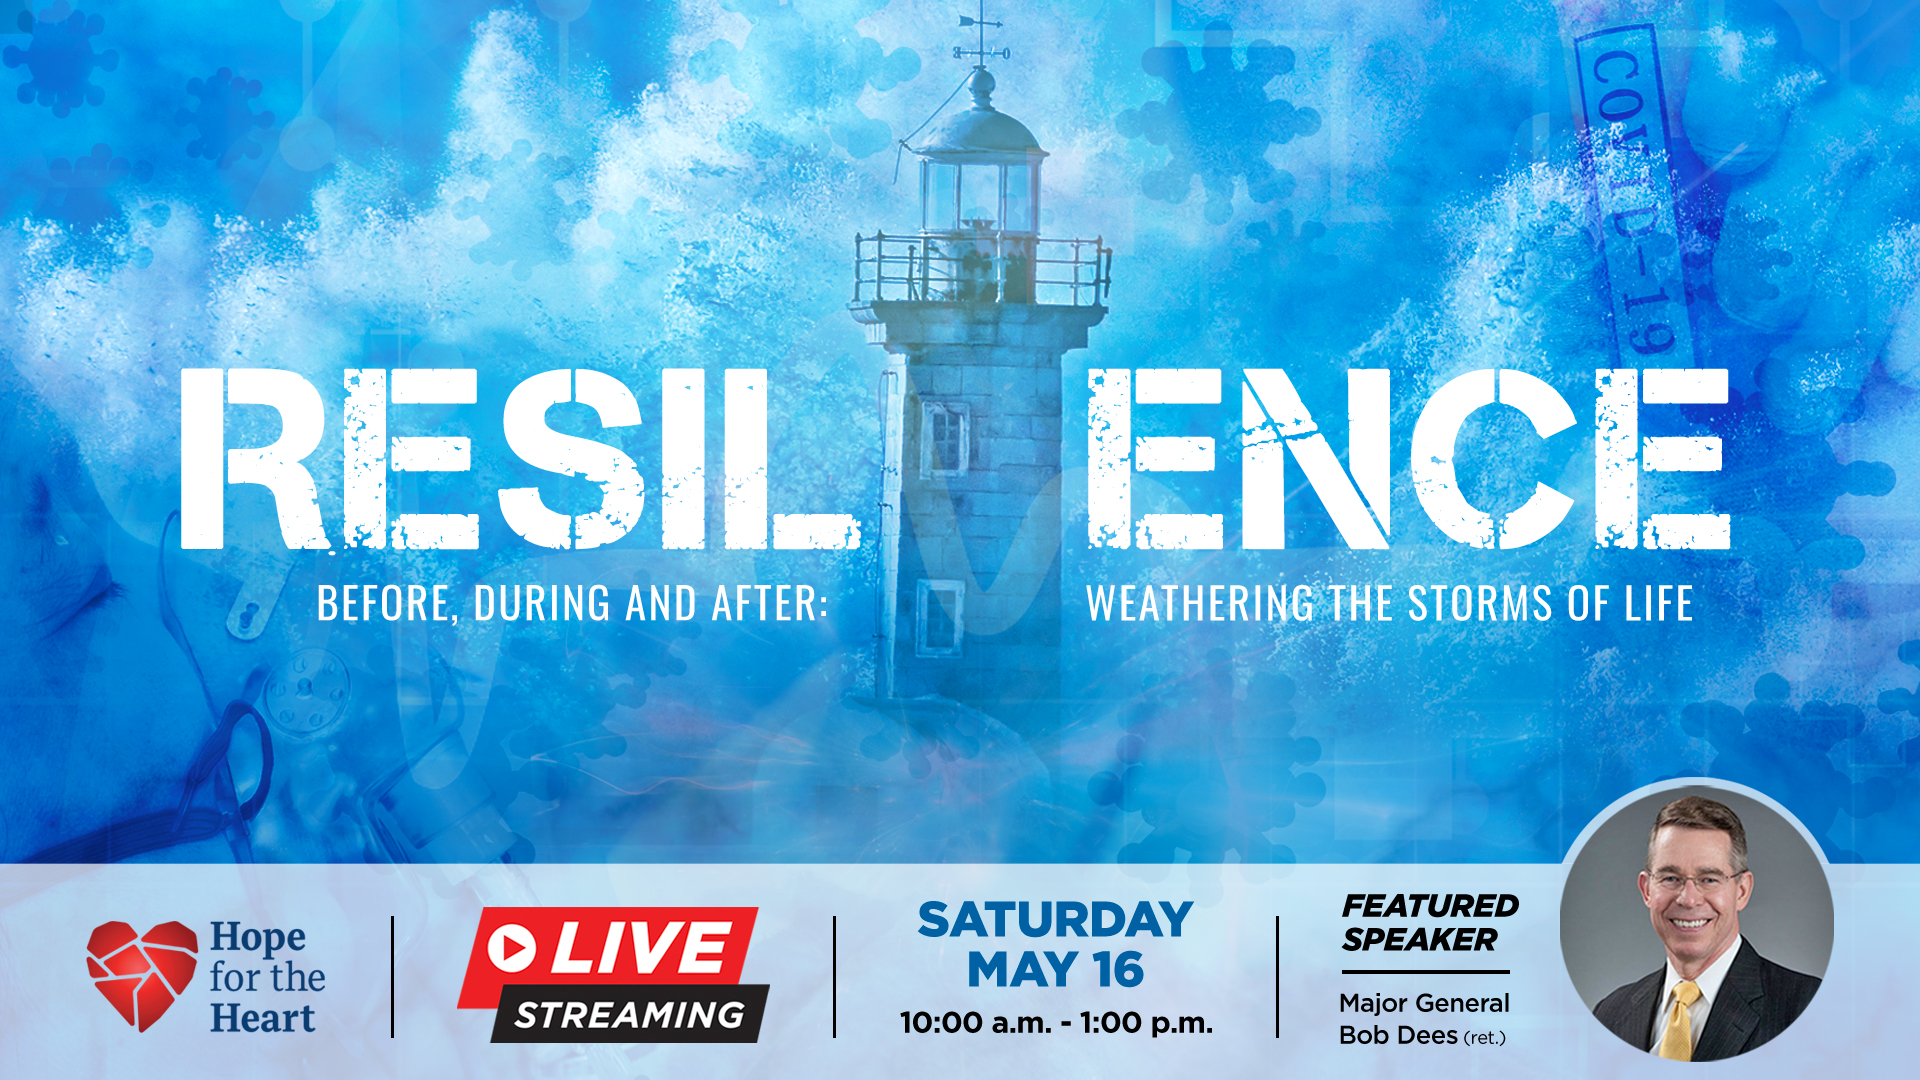 Resilience Symposium – 3 hr. Live Streaming